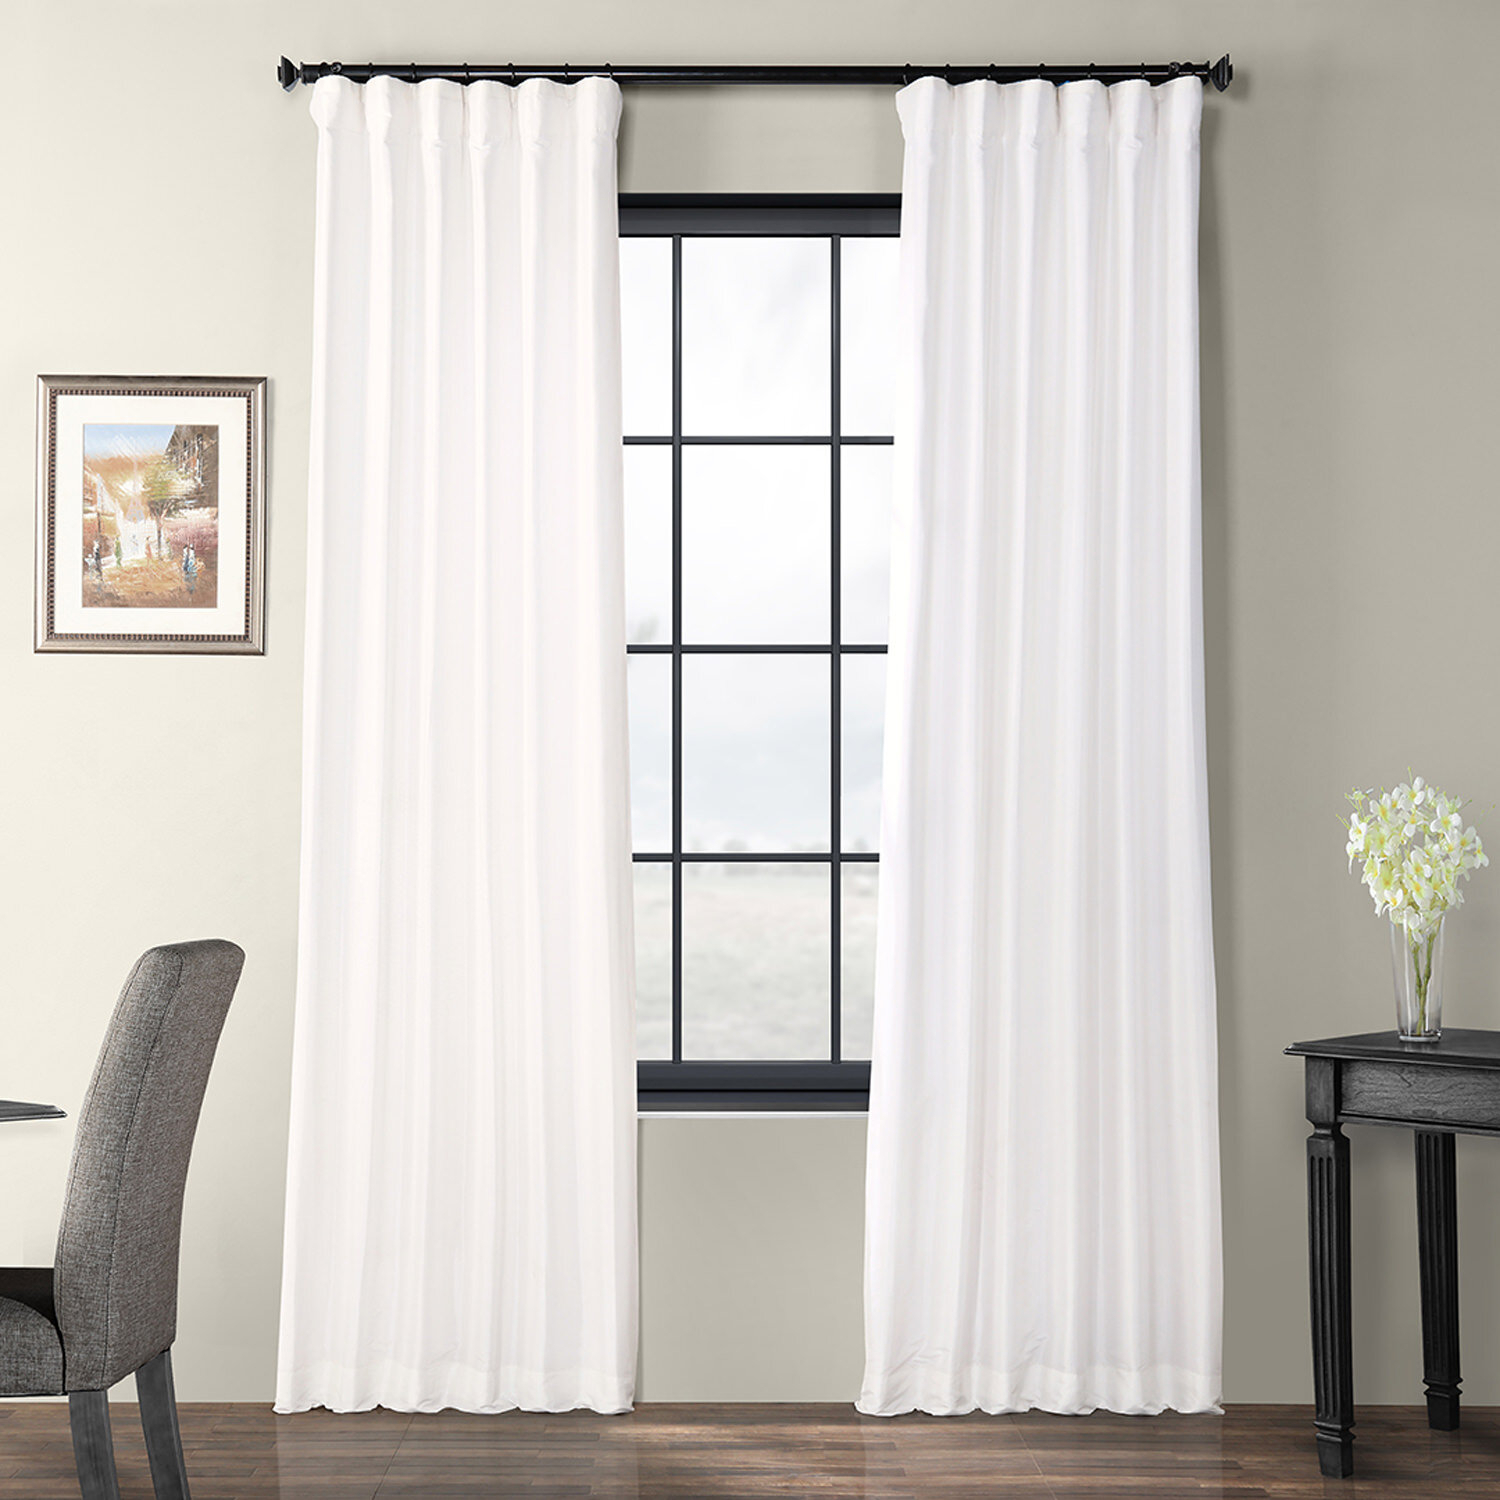 Lochleven Faux Silk Taffeta Solid Room Polyester Darkening Single Curtain Panel Pertaining To Solid Faux Silk Taffeta Graphite Single Curtain Panels (View 23 of 30)